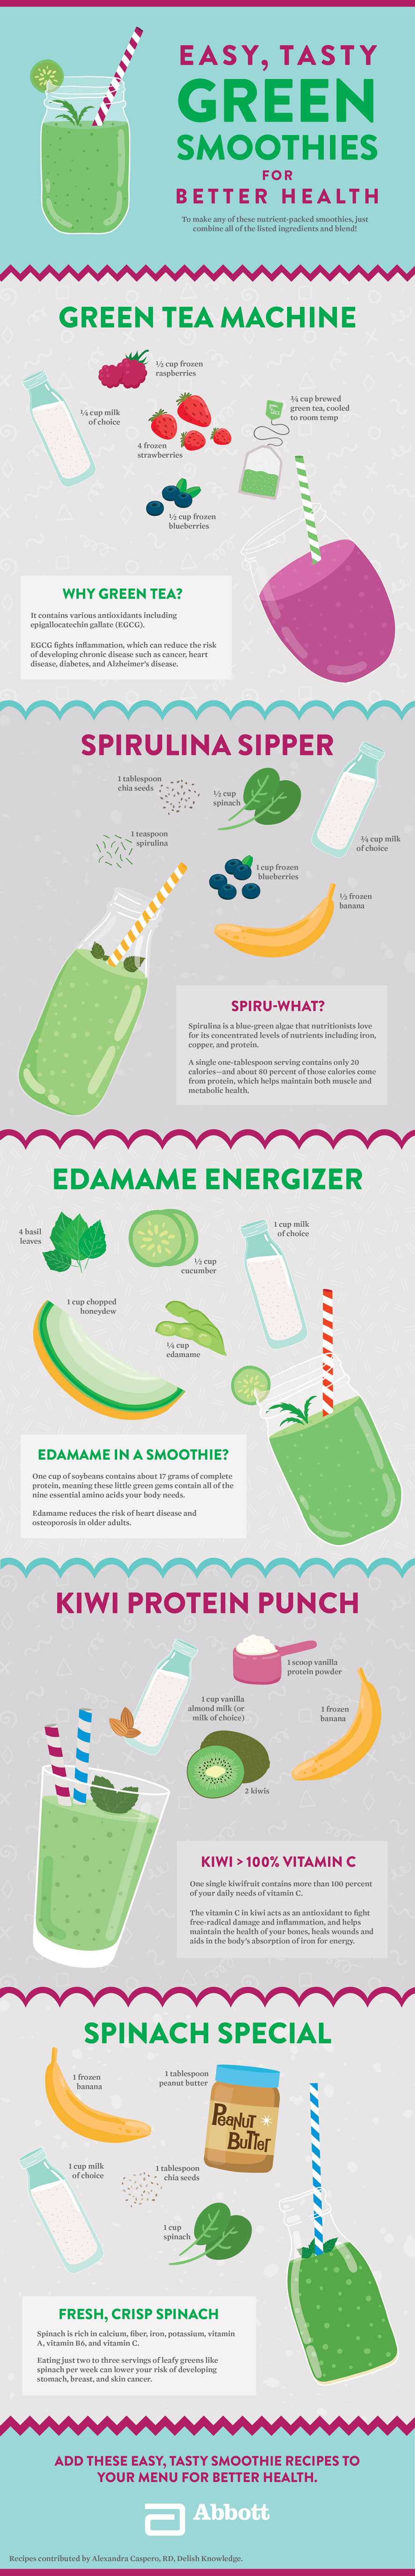 abbott-green-smoothies-infographic-plaza